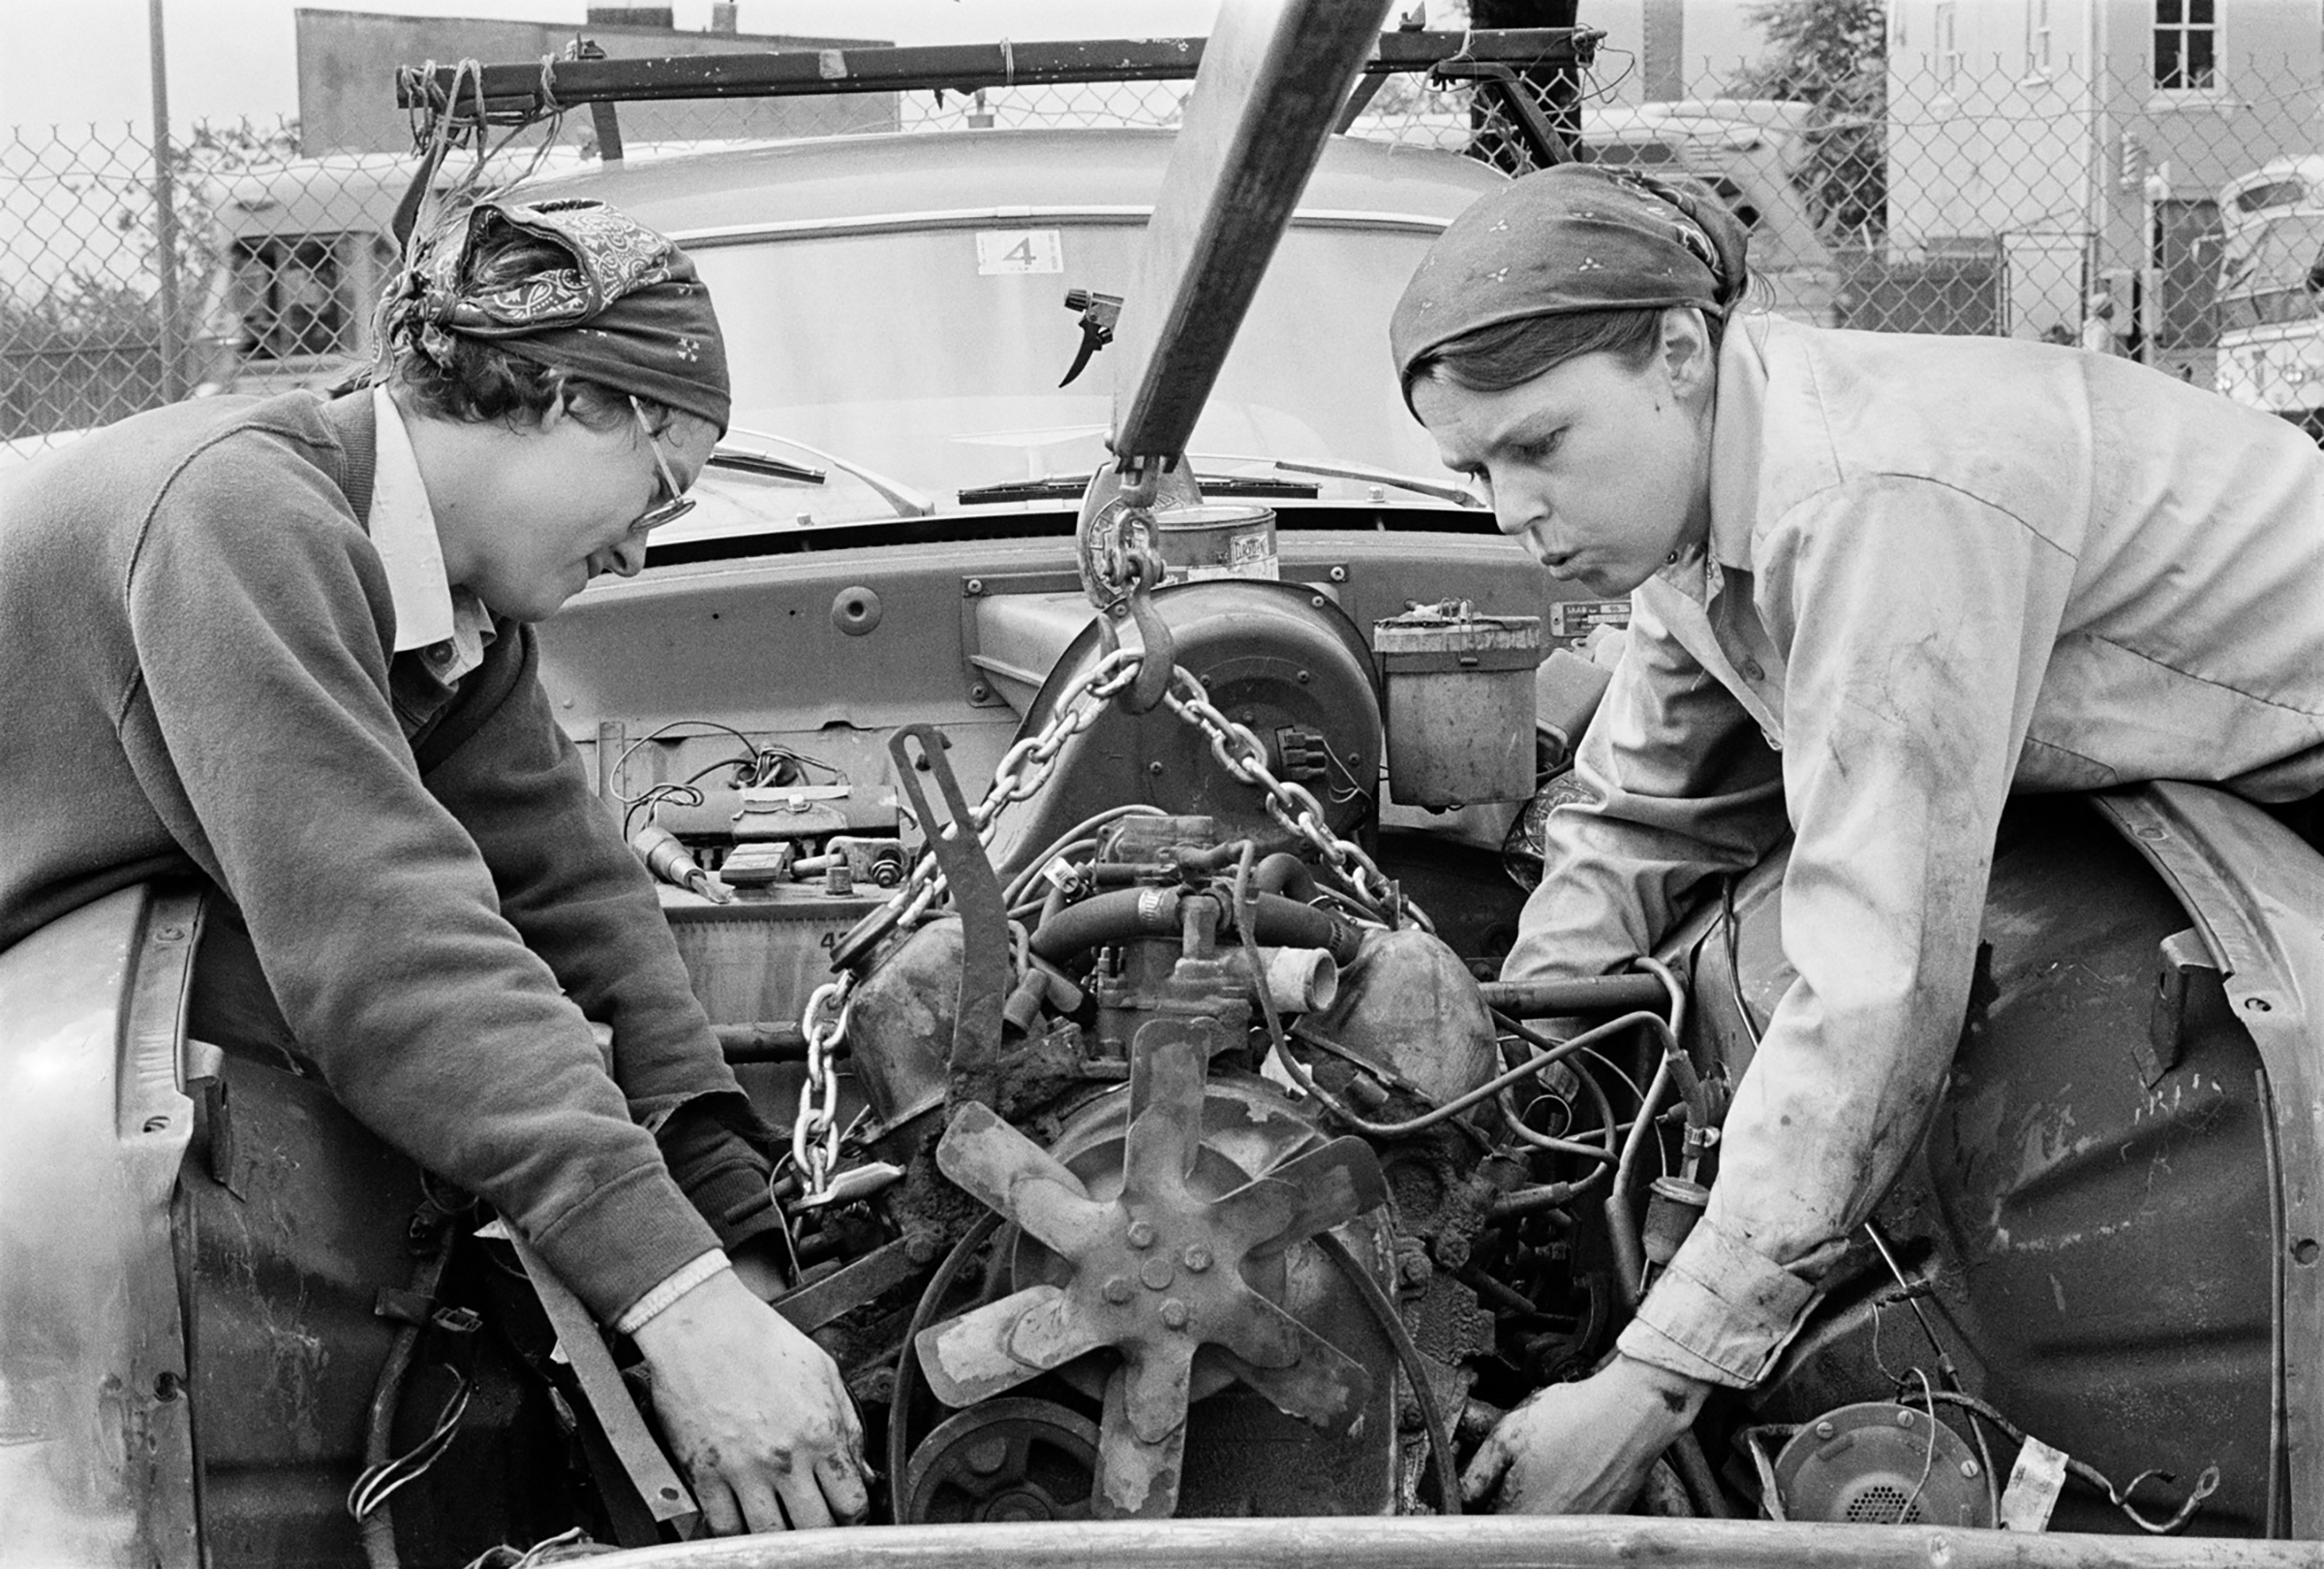 There is all this intimidating stuff around cars, because cars represent the power of being able to cope and get around in the world. If you know how to do that, you begin to realize how much more you can do. You can do anything you want.  Valerie Mullen and Lori. Washington, D.C., 1978.